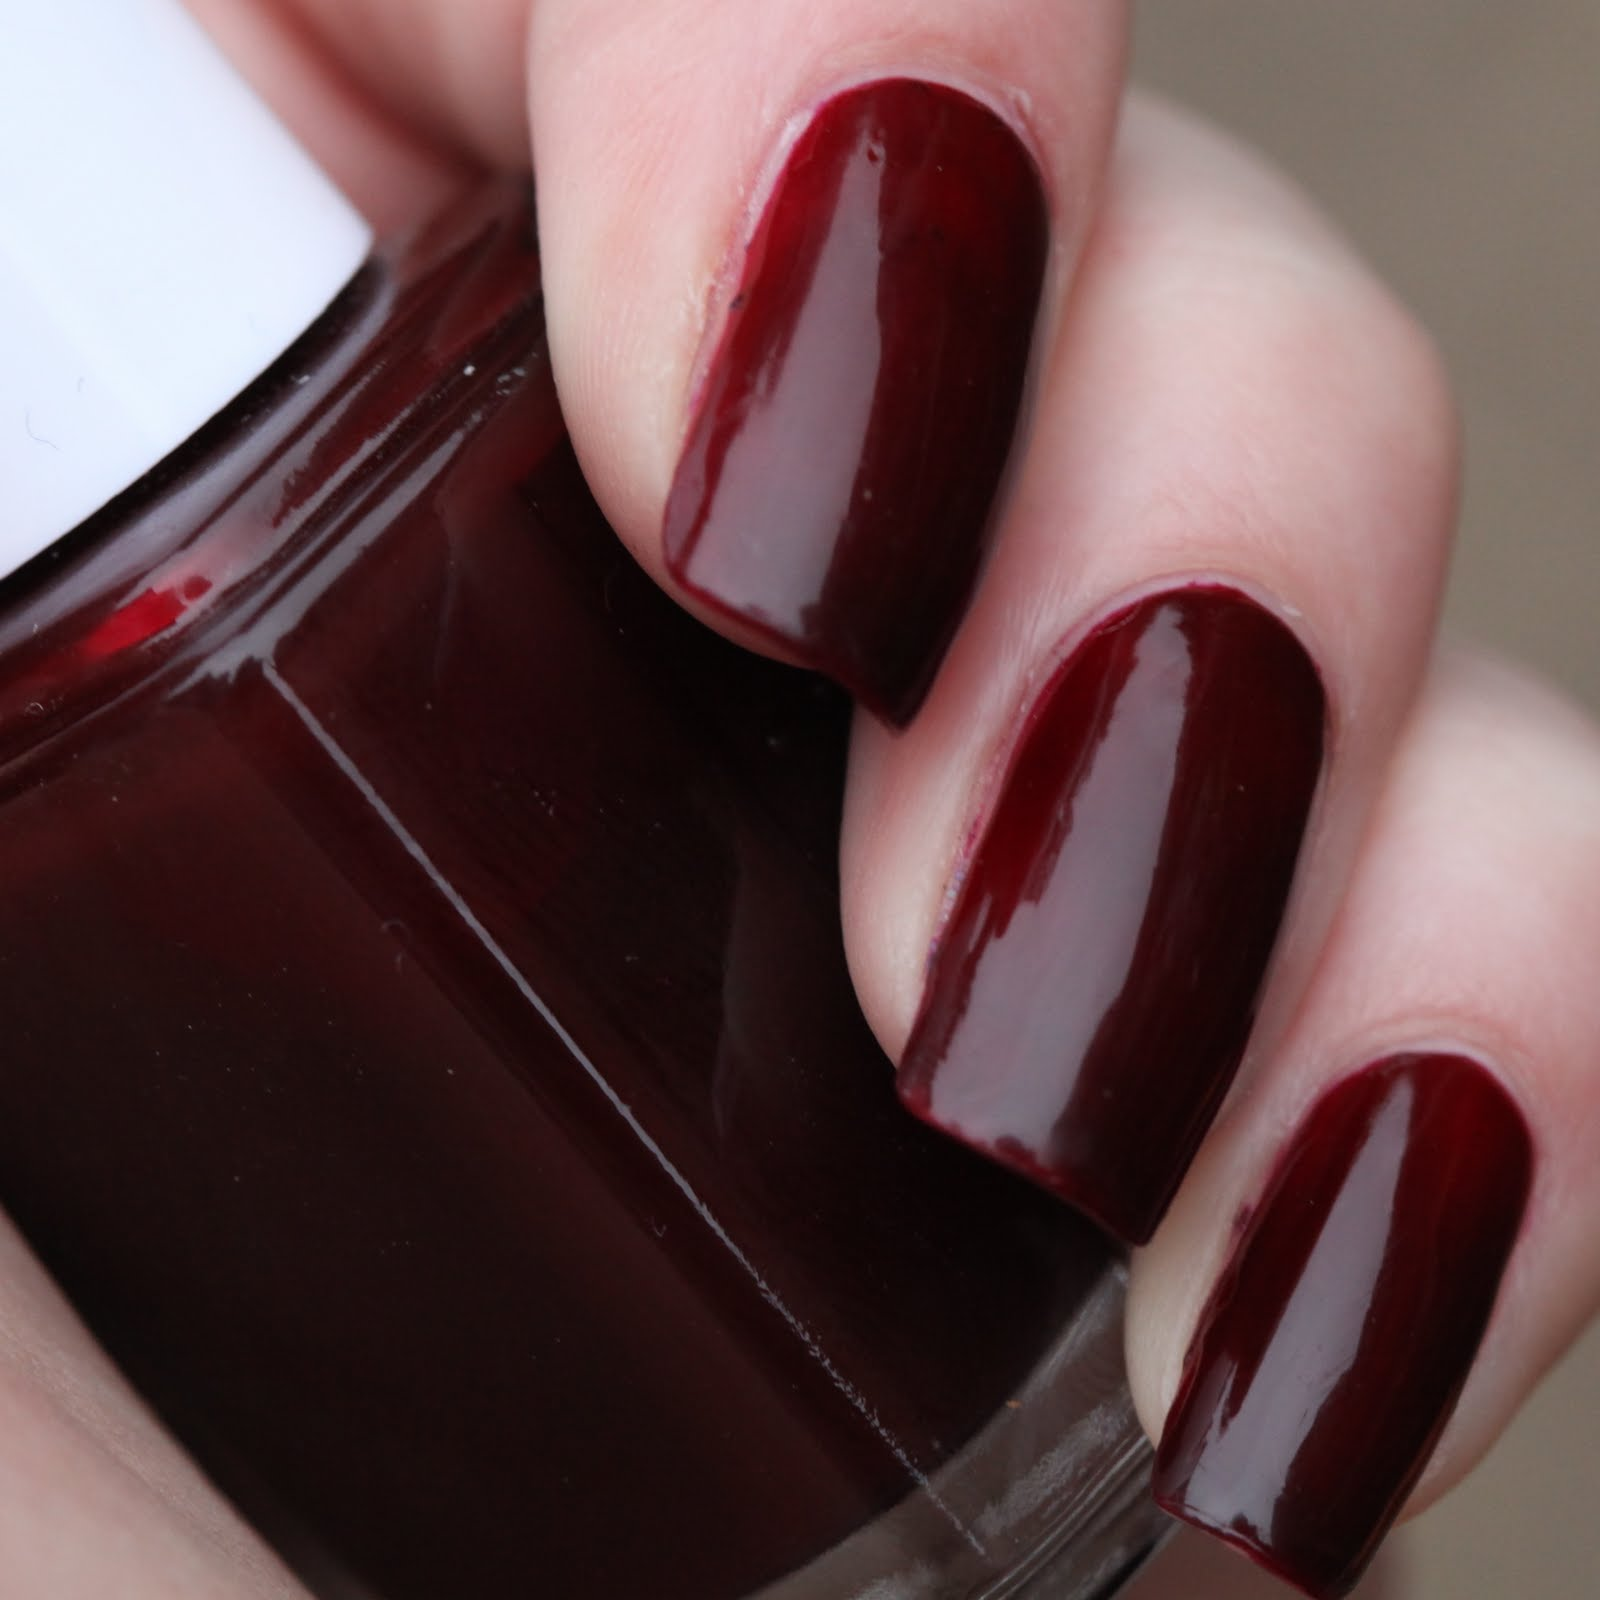 Polish or Perish: Vamps for October: Essie Lacy not Racy